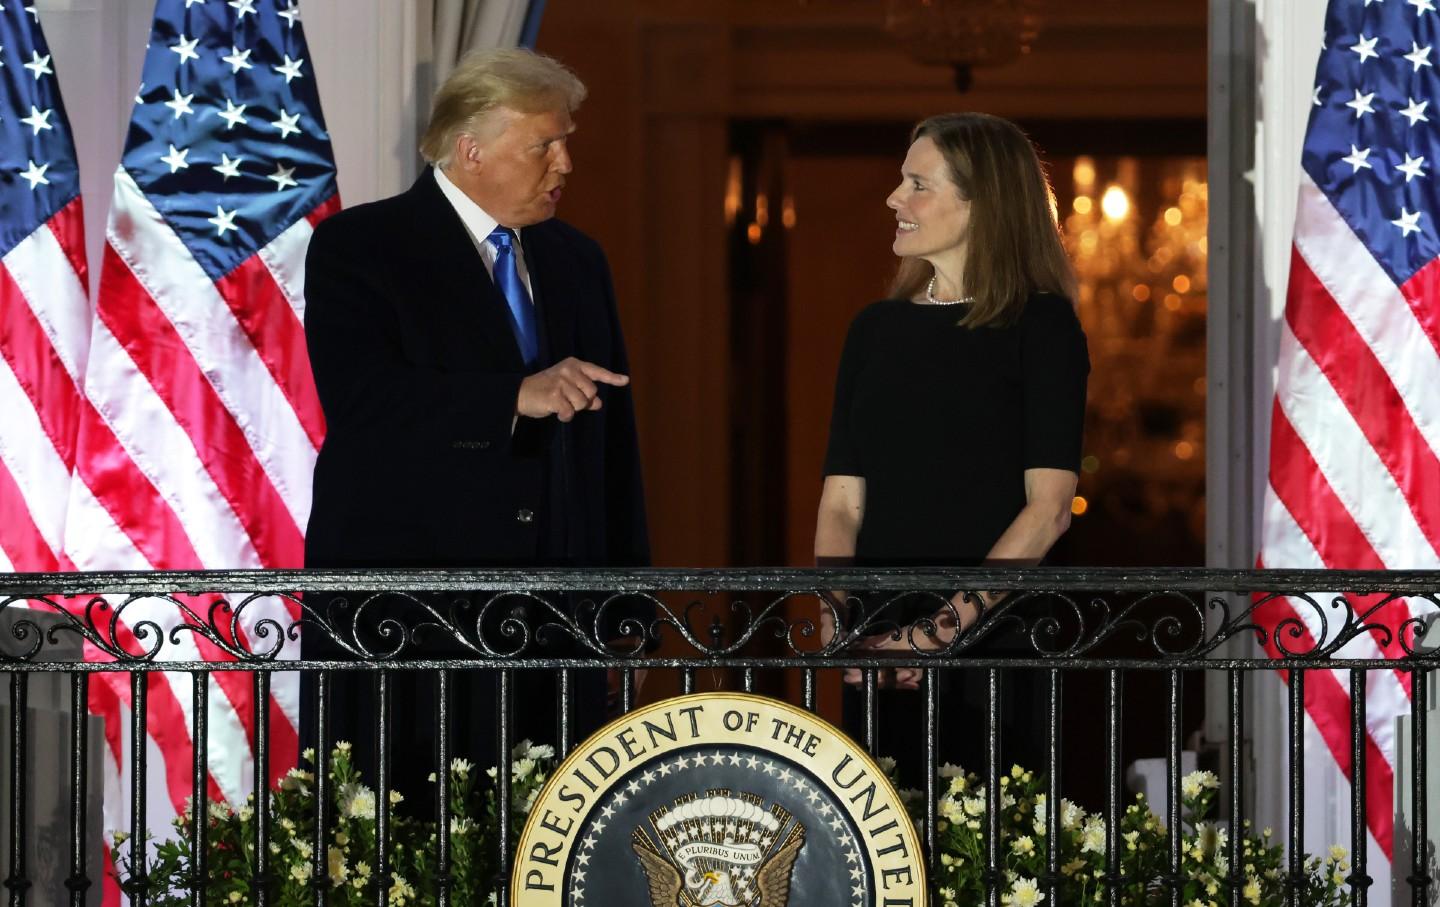 Donald Trump speaks to Amy Coney Barrett